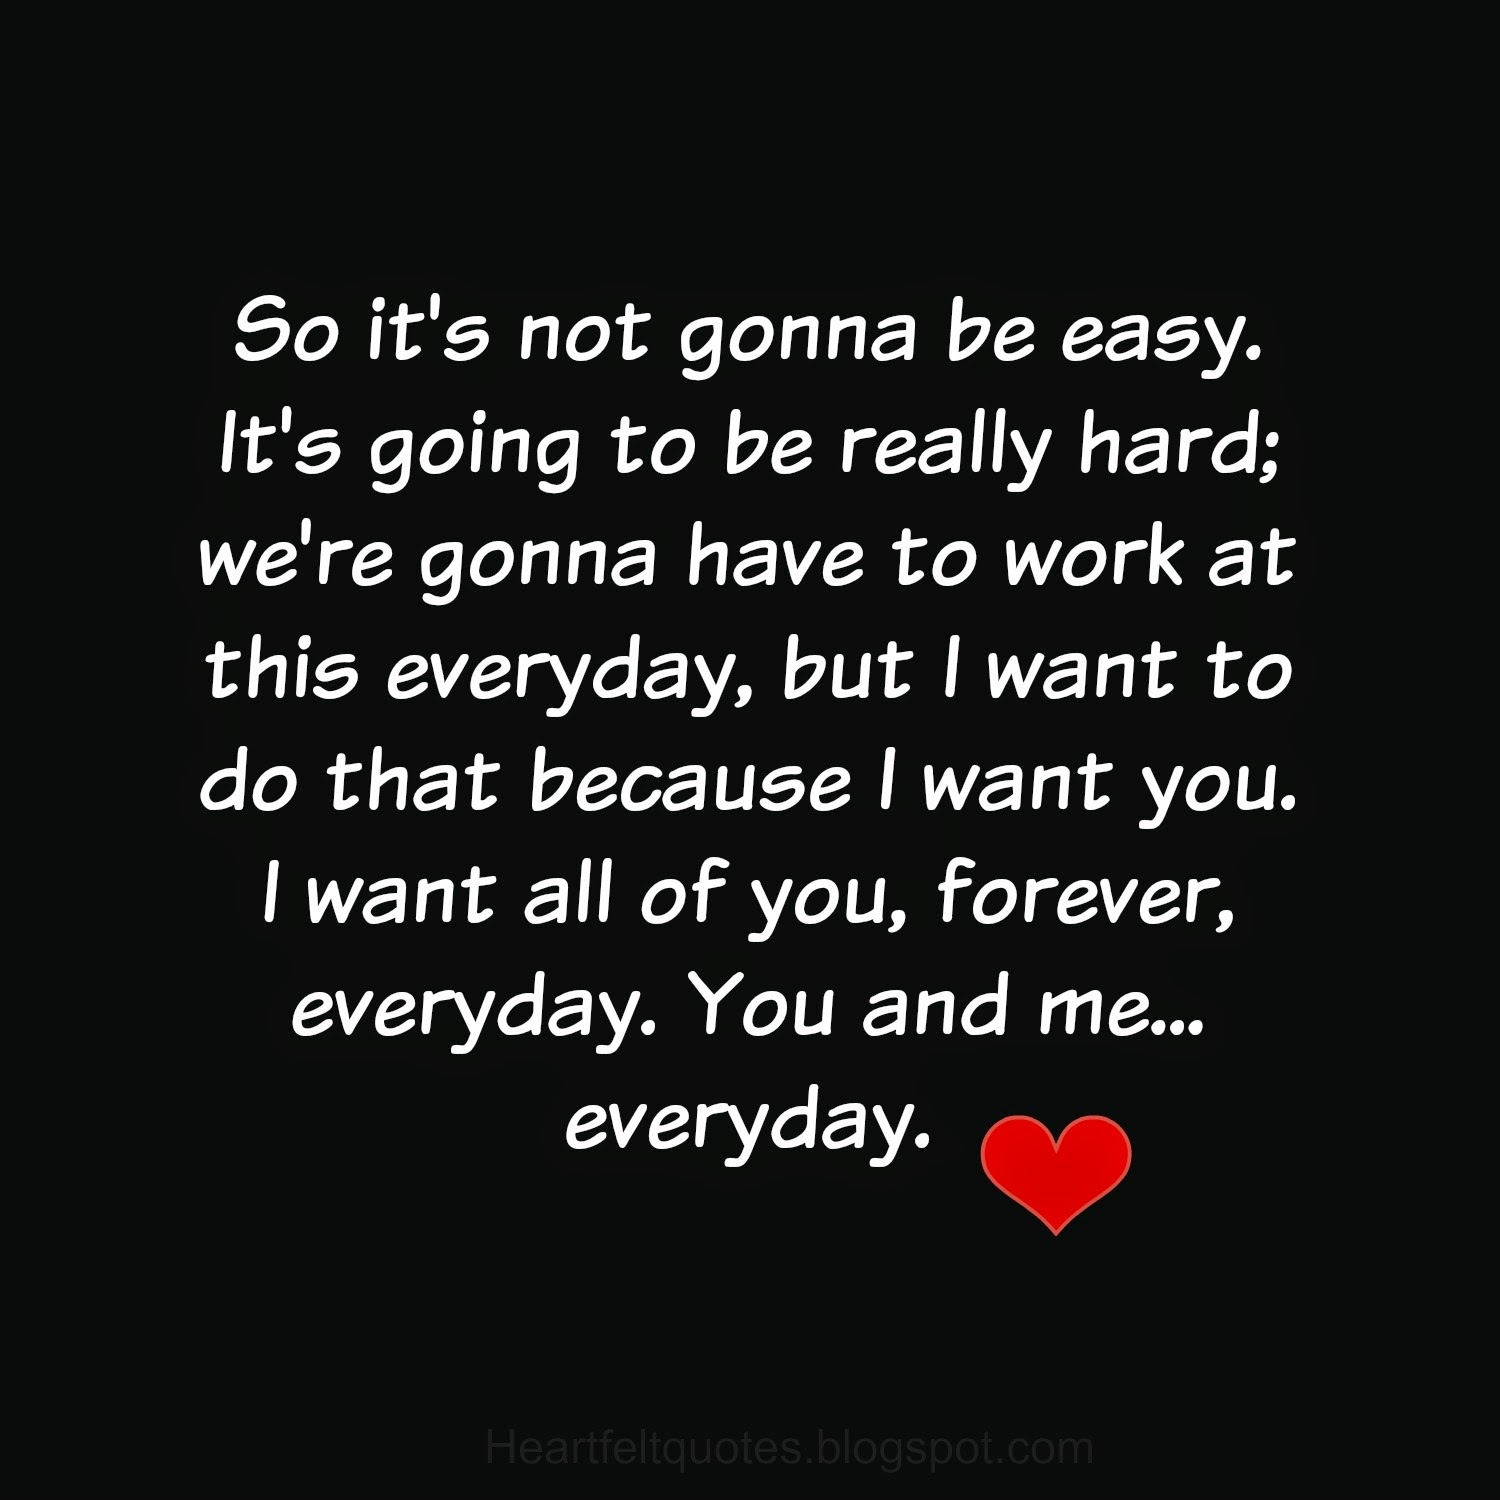 Heartfelt Quotes: I Want All Of You, Forever, Everyday